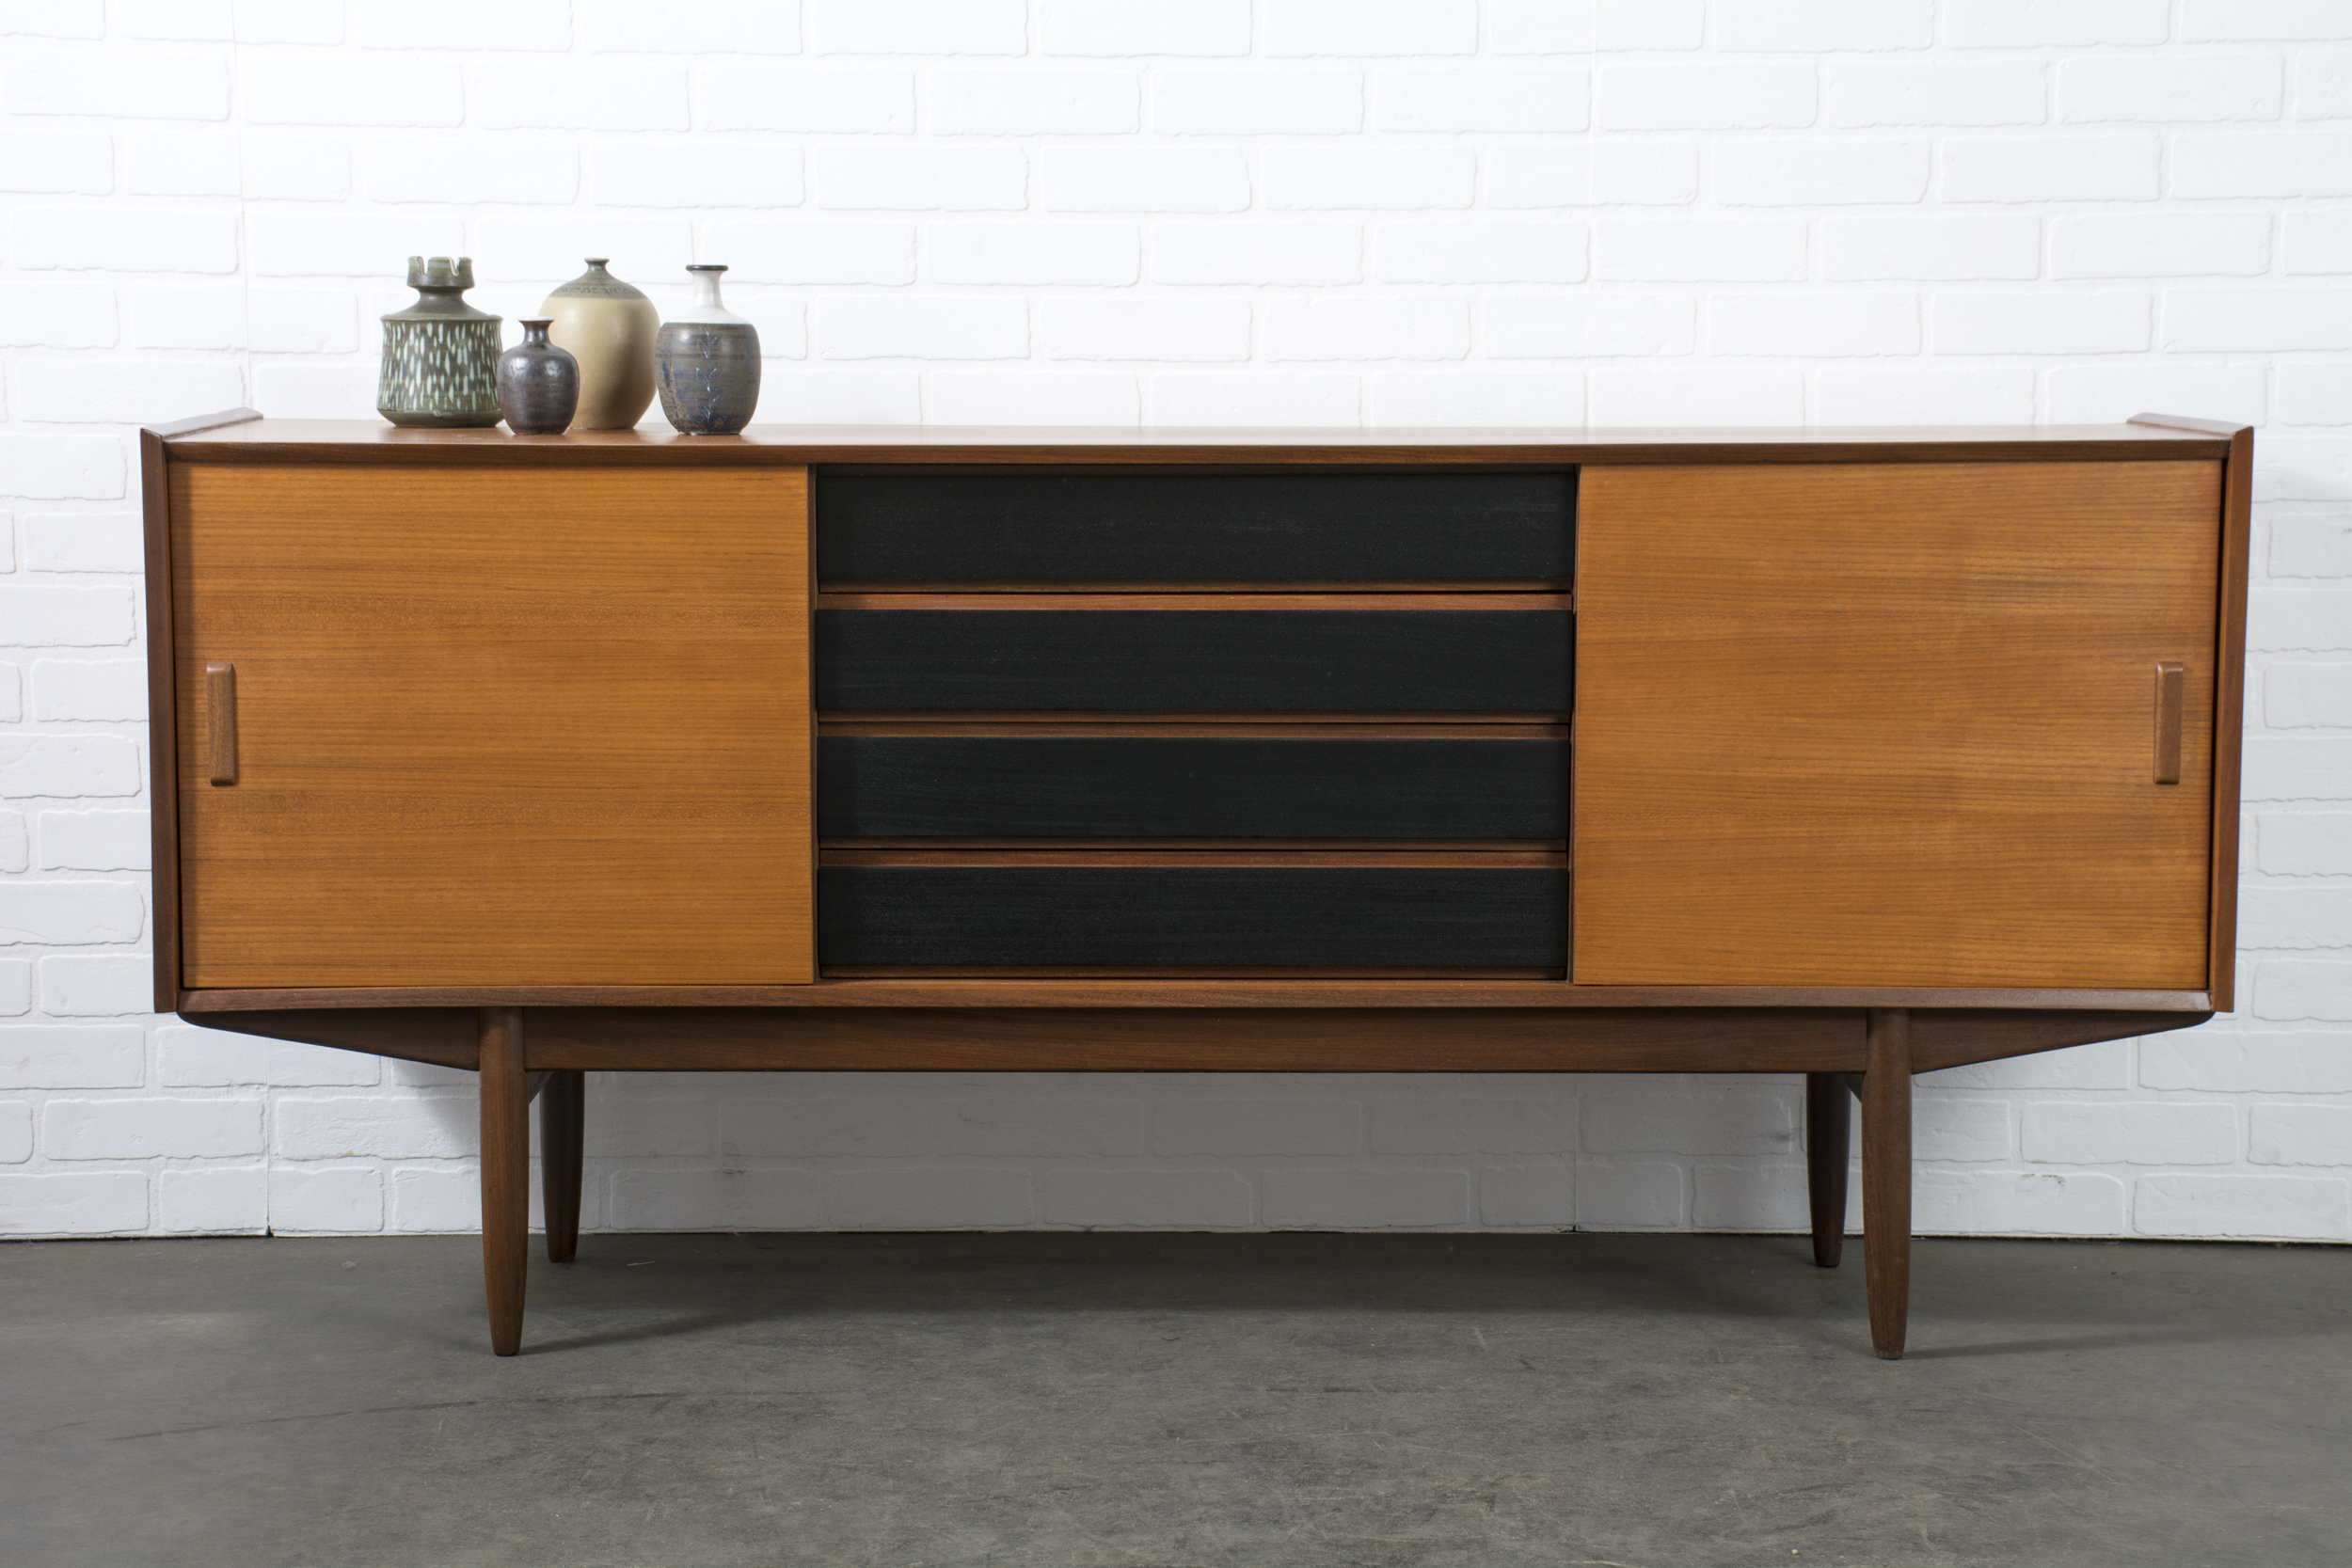 Copy of Vintage Mid-Century Sideboard by Hulmefa